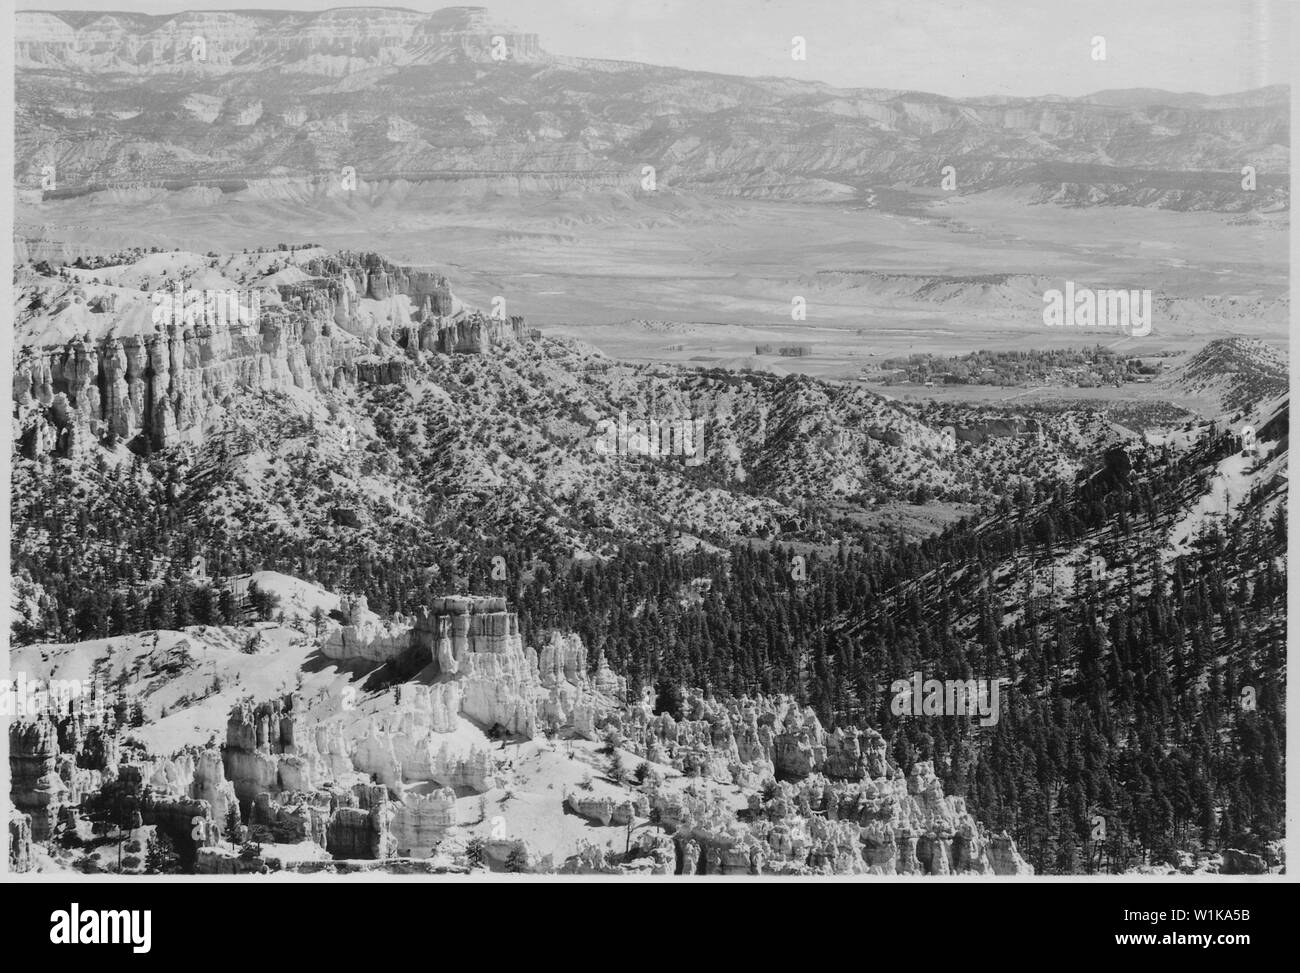 View east from rim near Inspiration Point showing Bryce Temple in the foreground, bottom of the Canyon, village of Tropic, Utah, Valley of the Pahreah River, and Escalante Mountain. Stock Photo